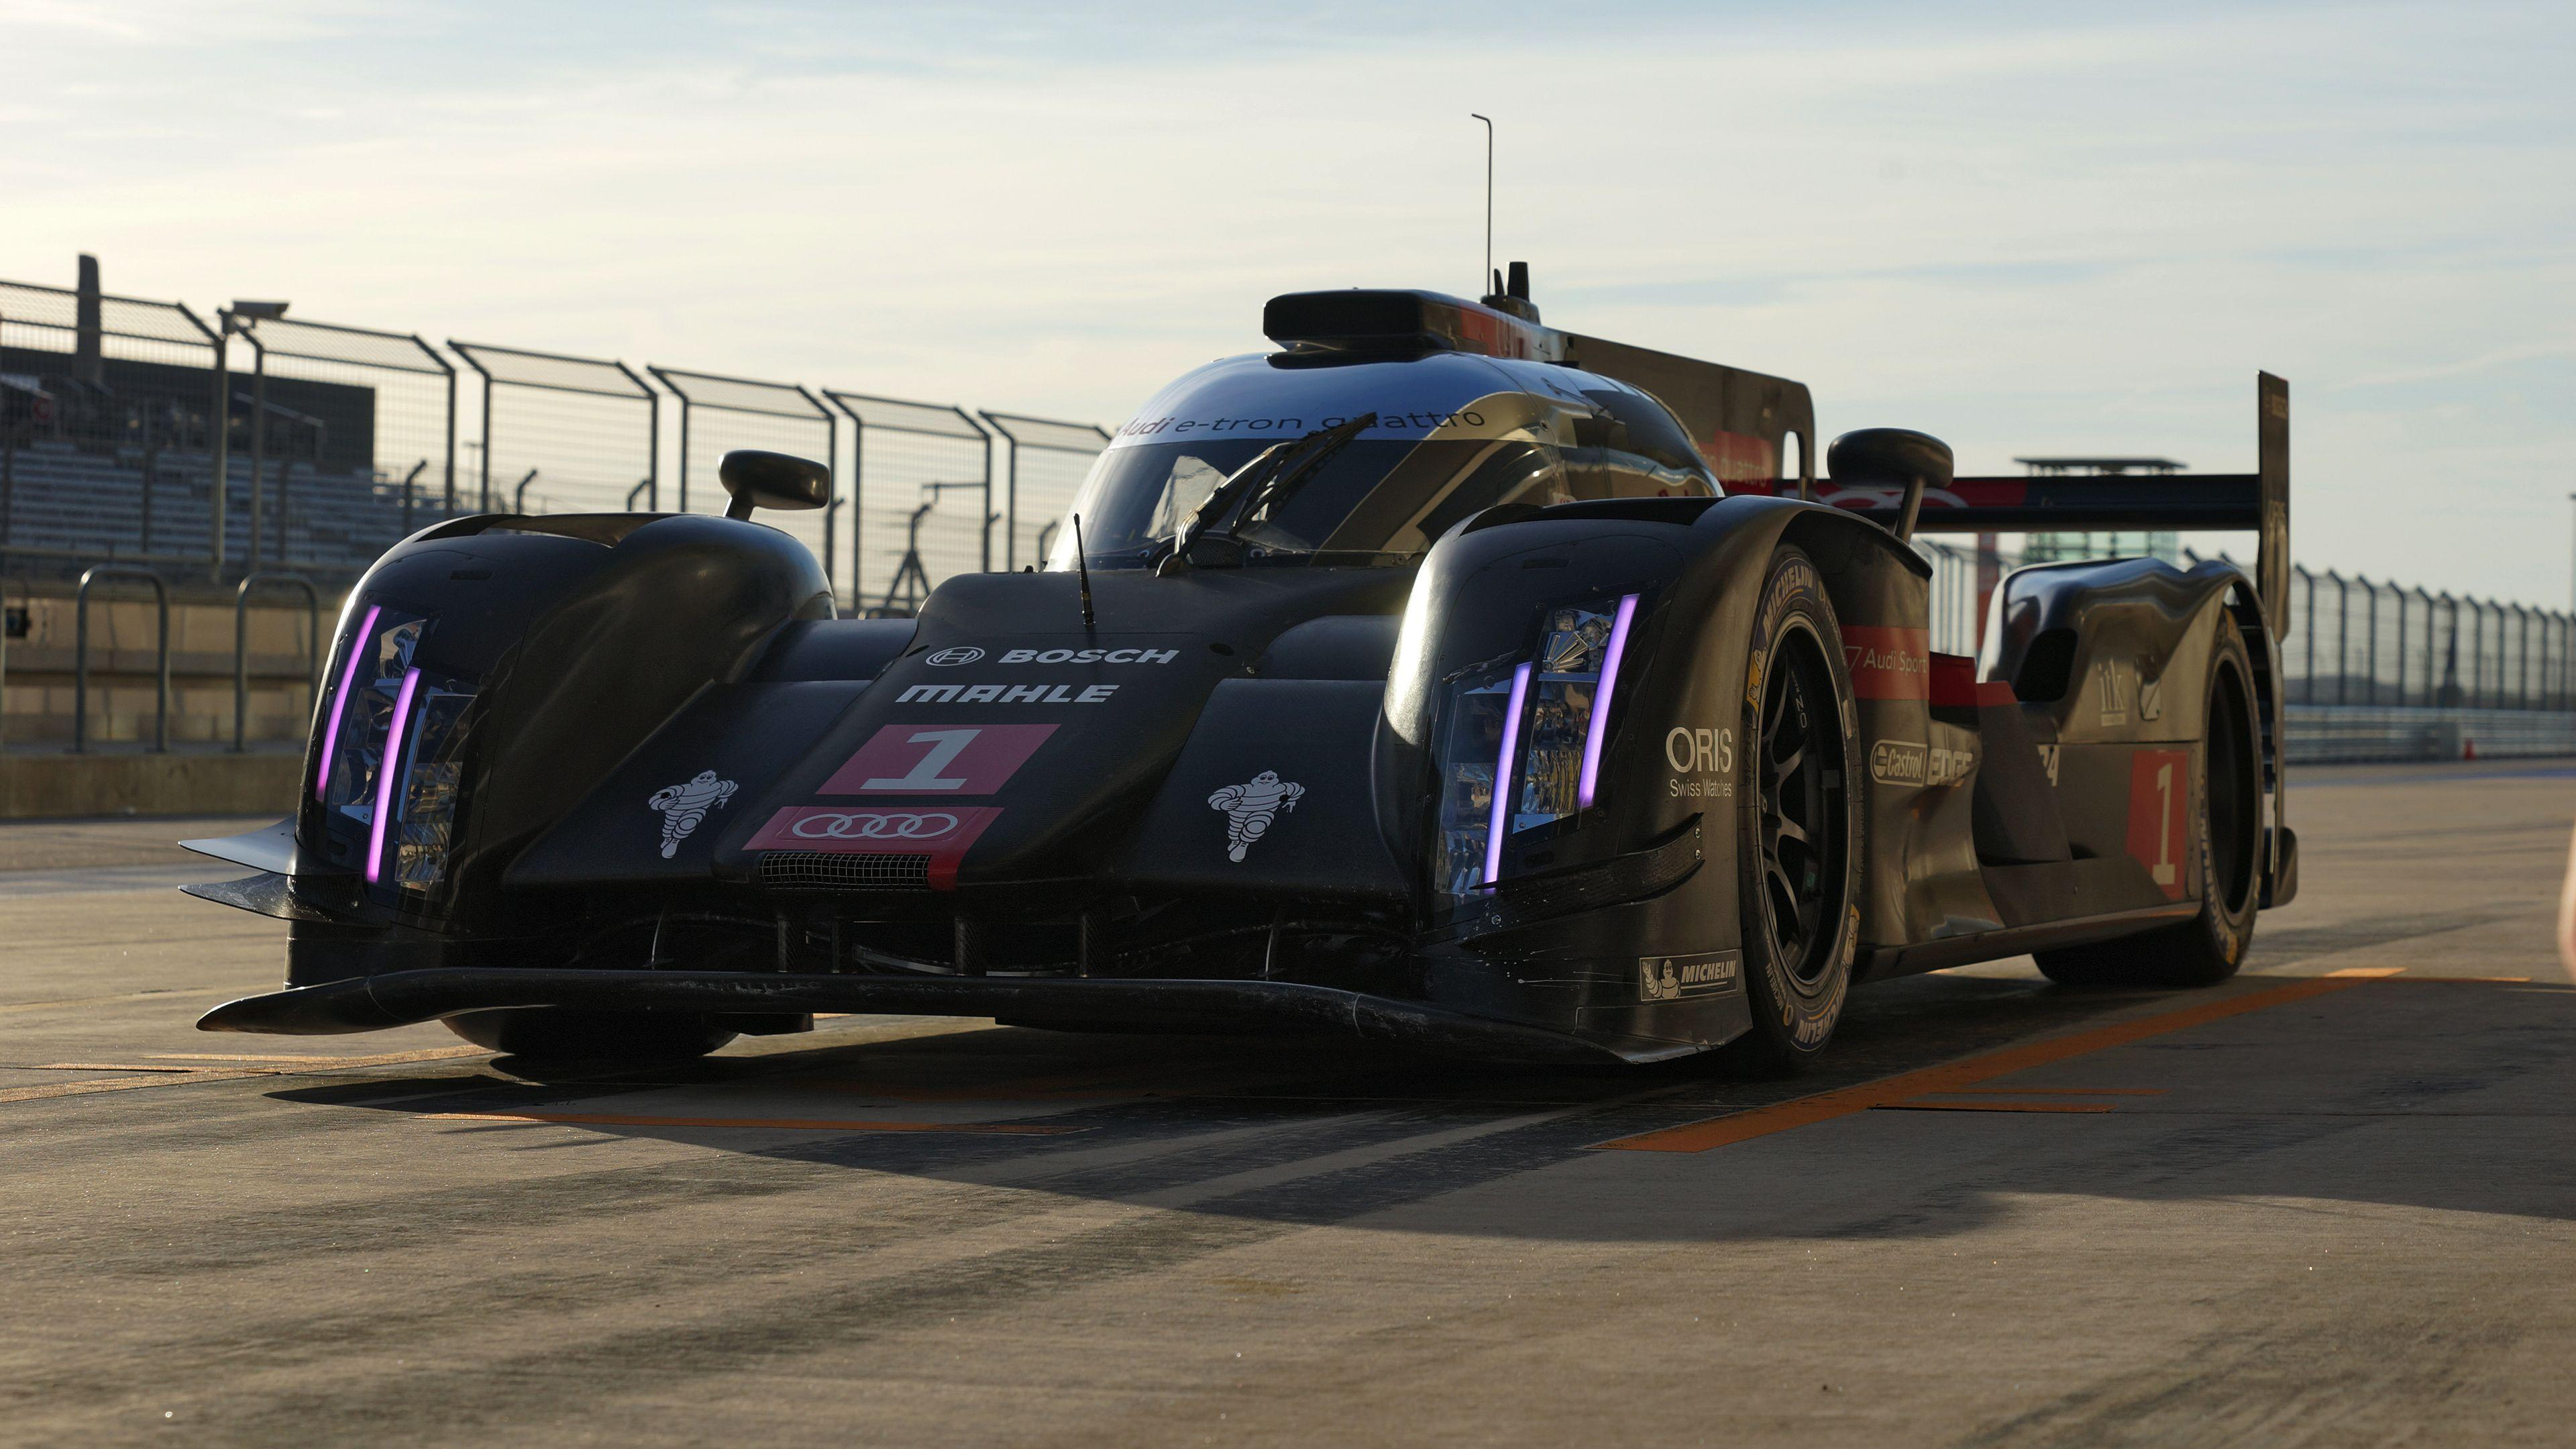 Wallpapers of the Day: Audi R18 e